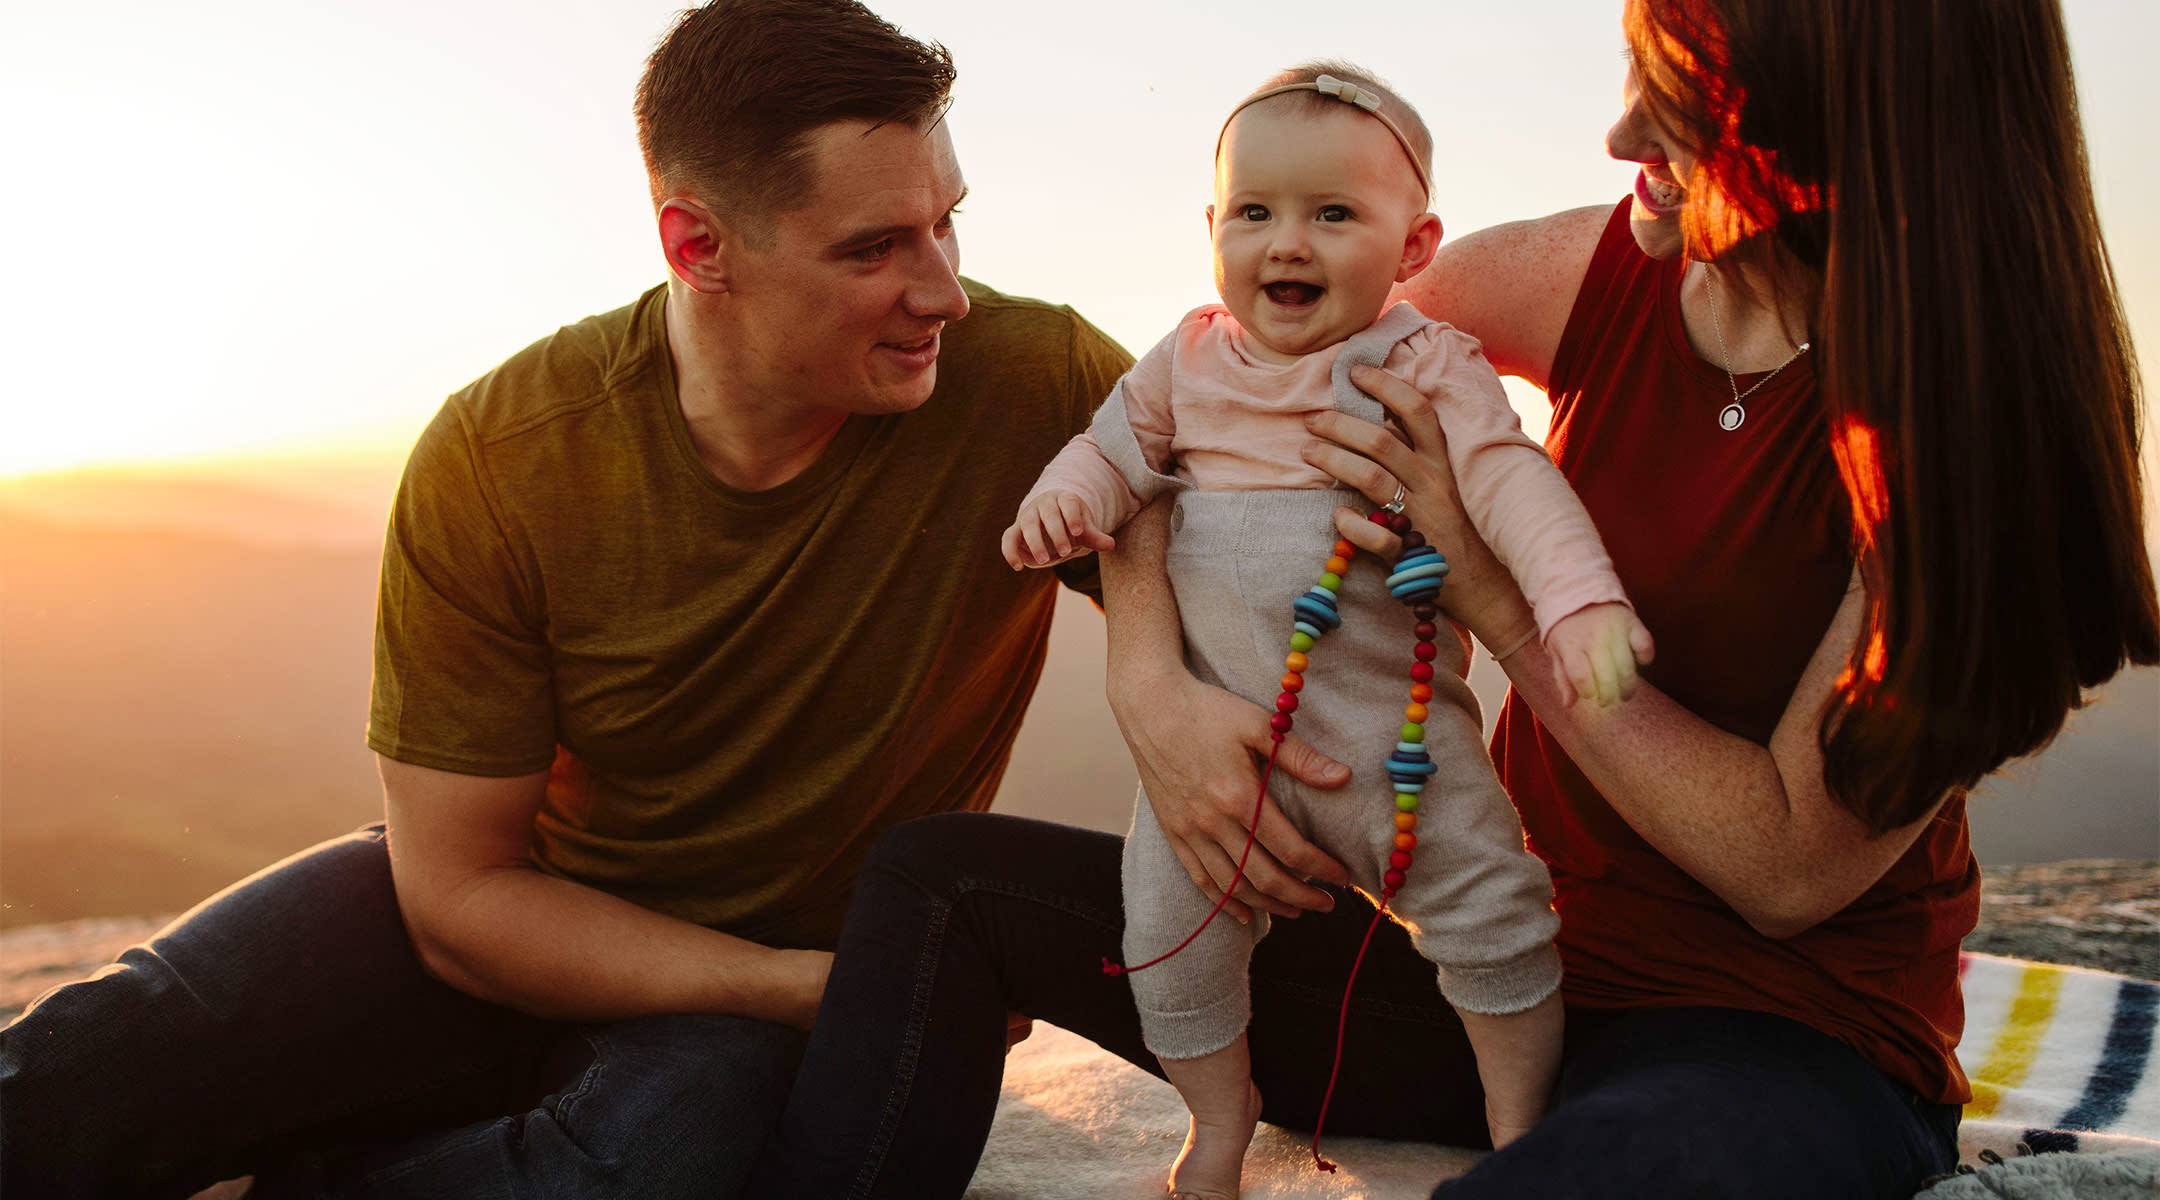 parents holding up their laughing baby while outdoors